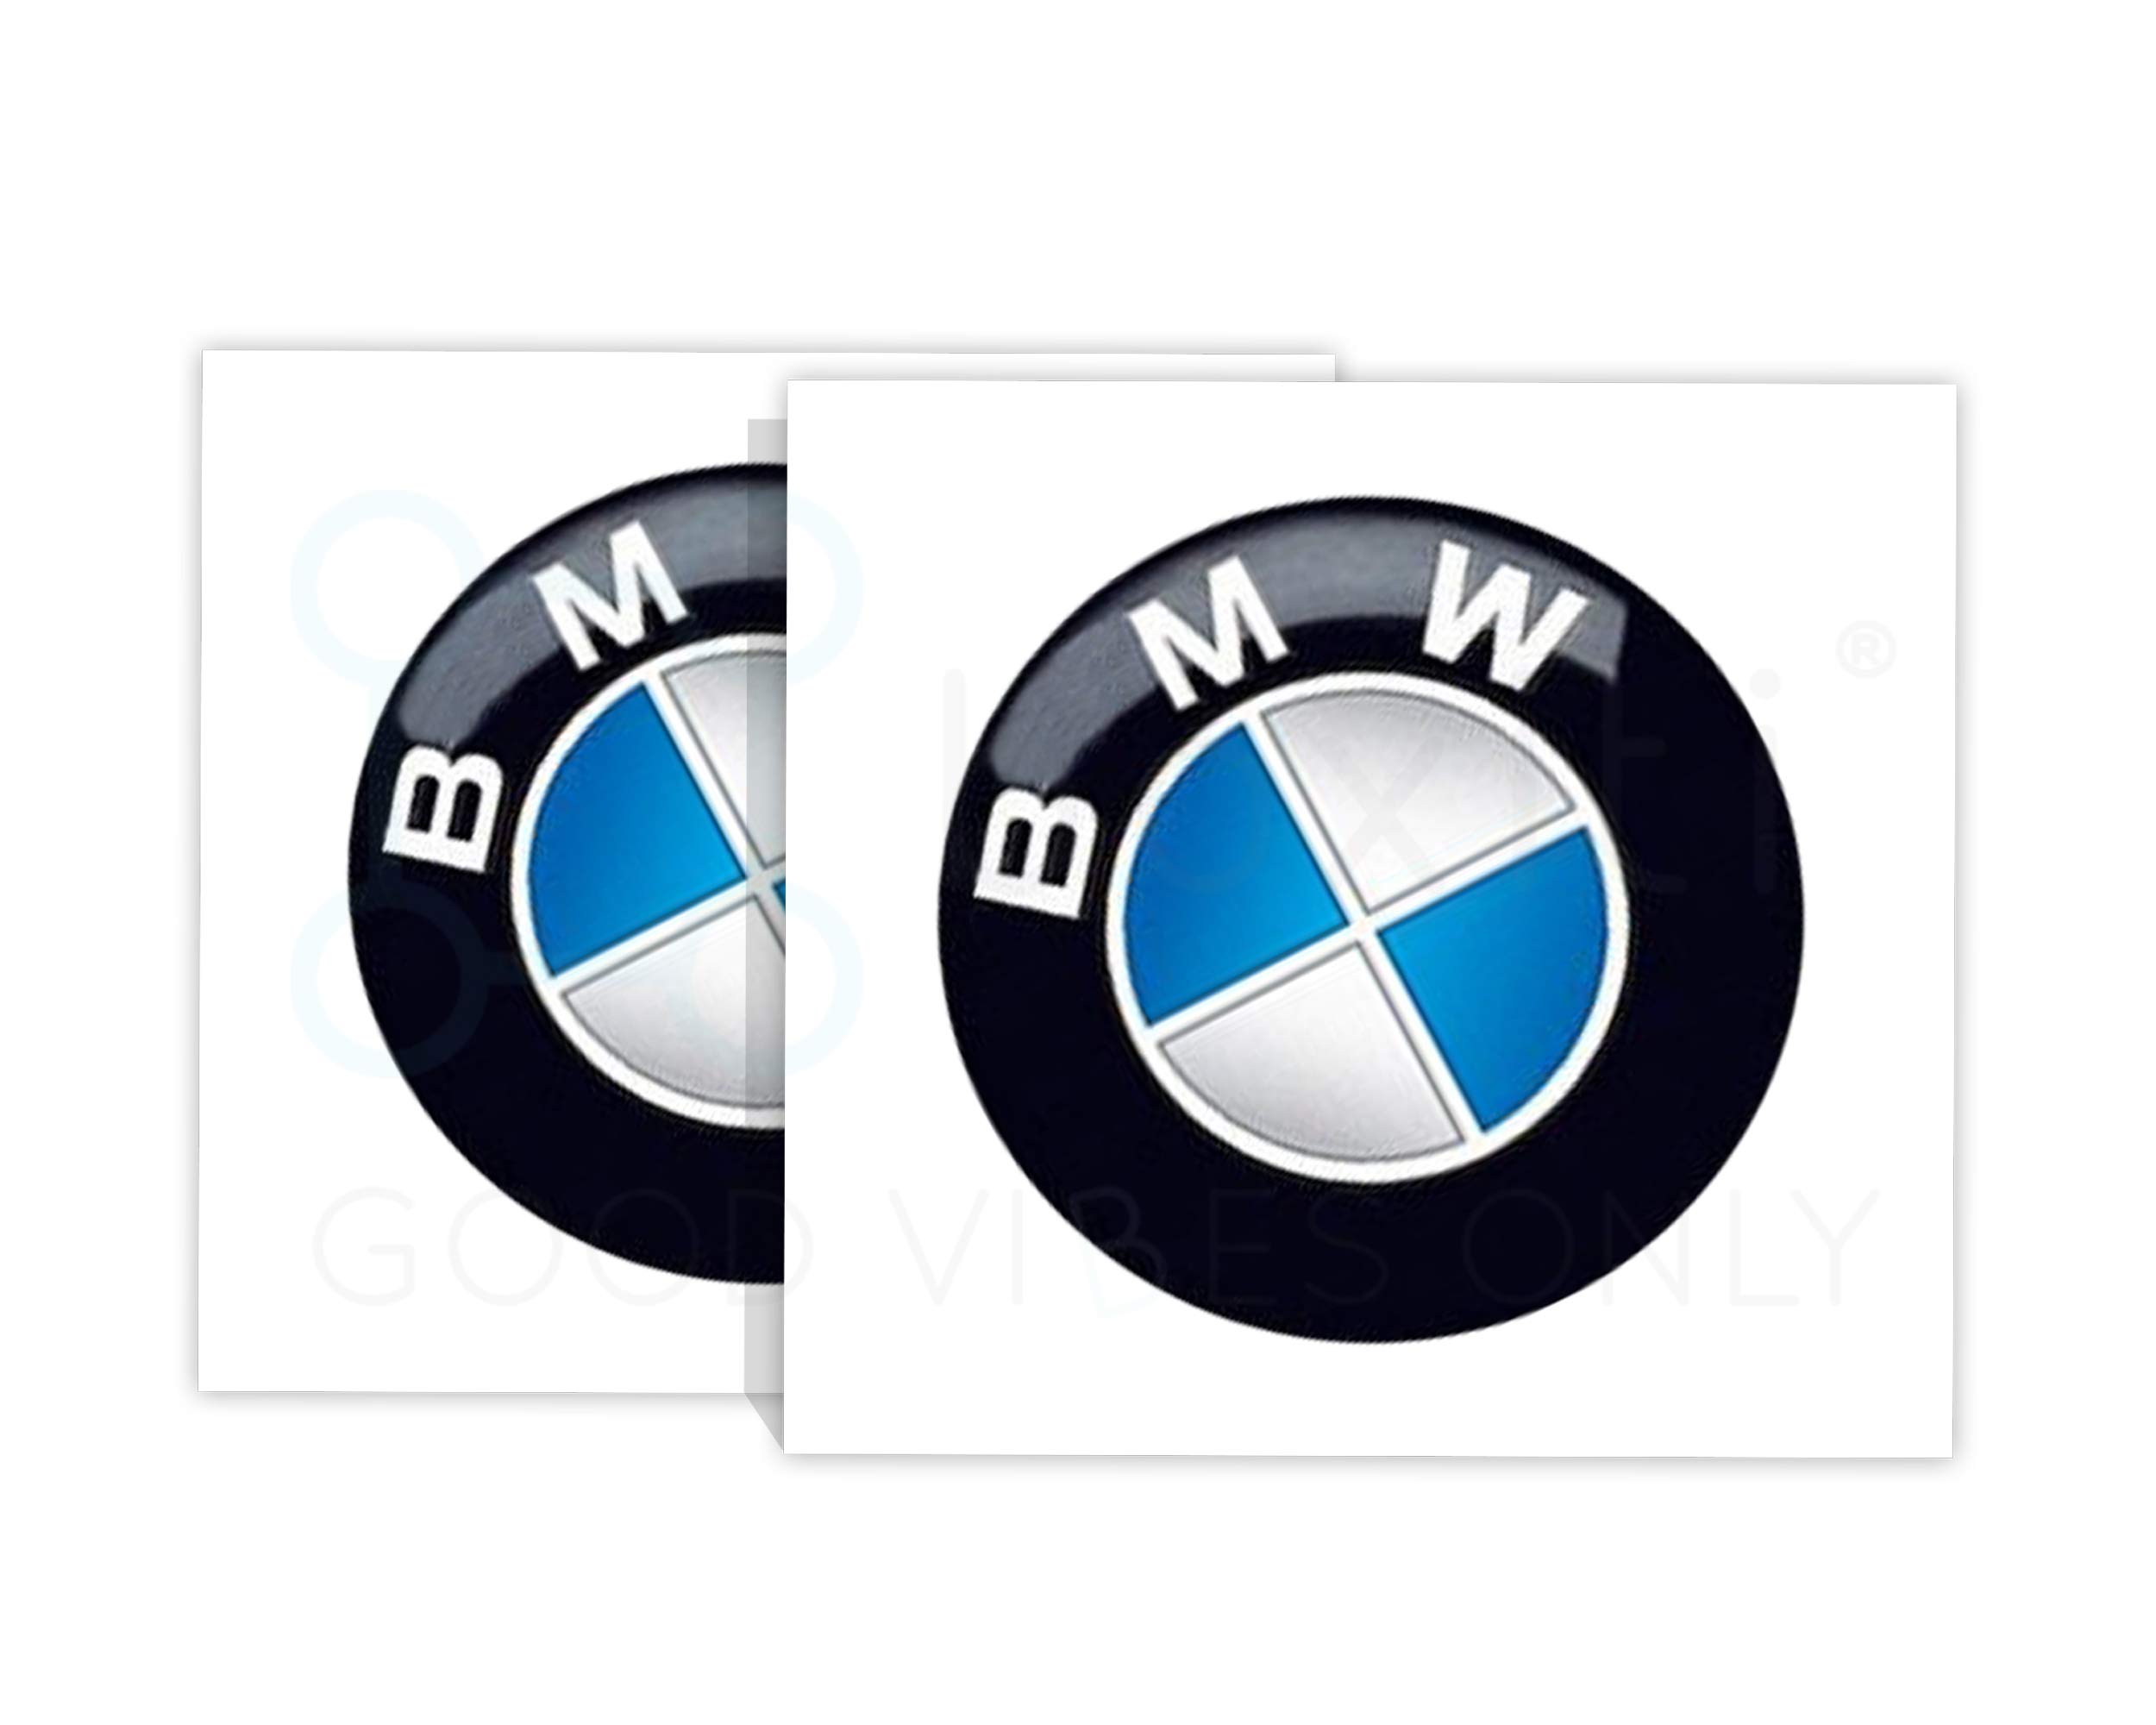 6 PCS for BMW Emblems Decals Stickers 2 PCS 29mm Multimedia Control Badge Sticker 2 PCS 12mm Radio Button Emblem Sticker 2 PCS 11mm Remote Key Emblem Sticker for BMW